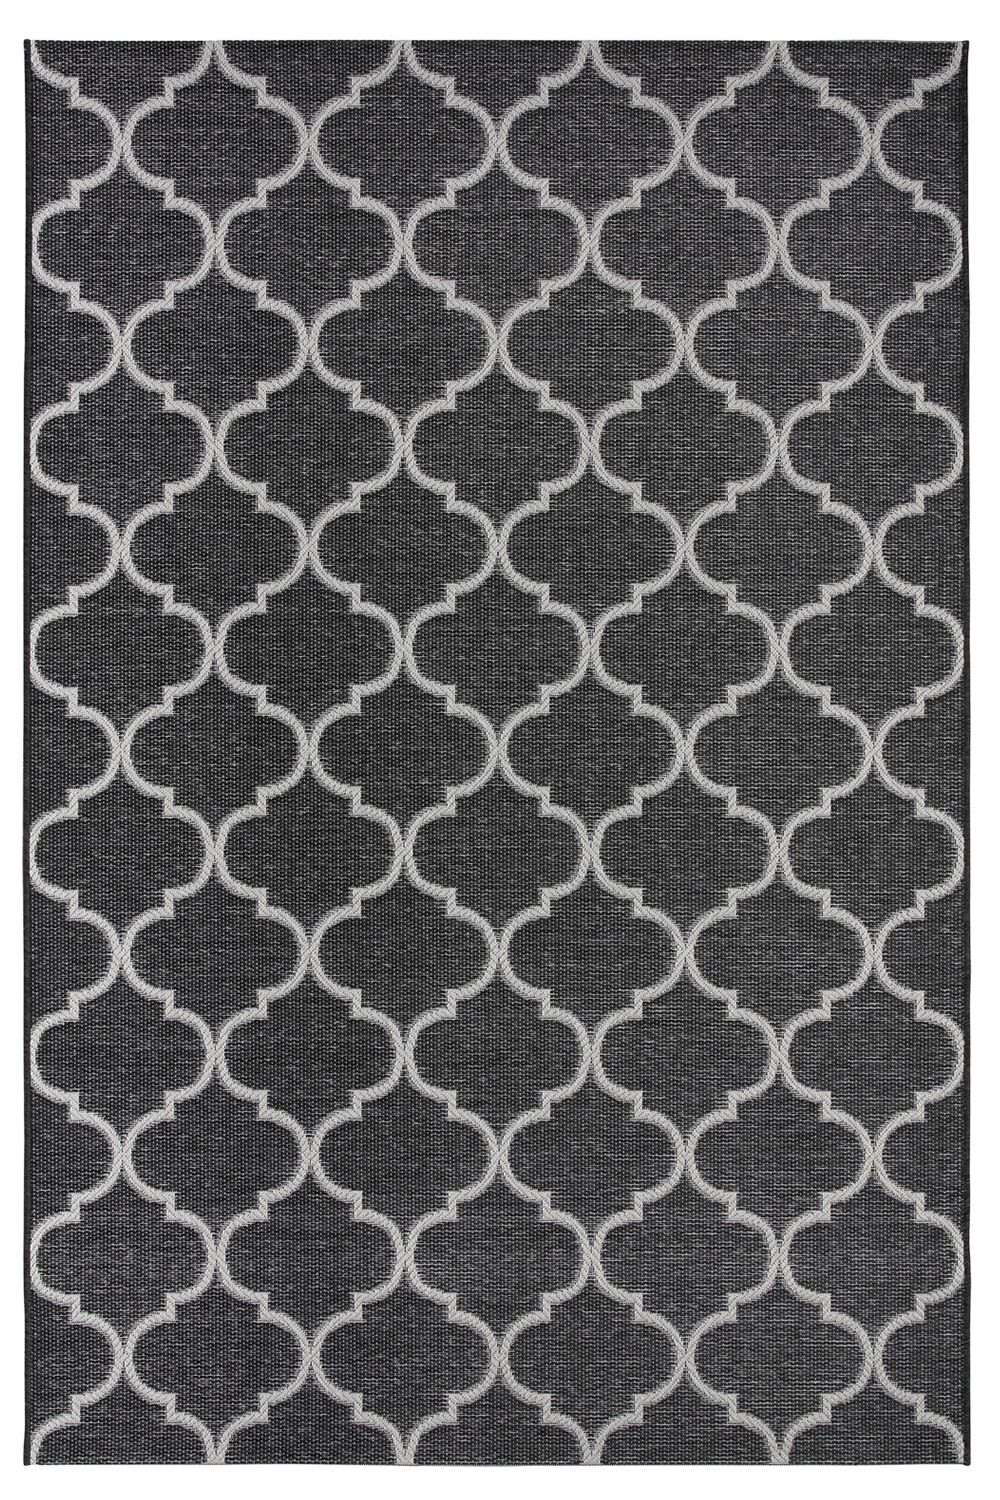 Outdoor rug, in grey colour